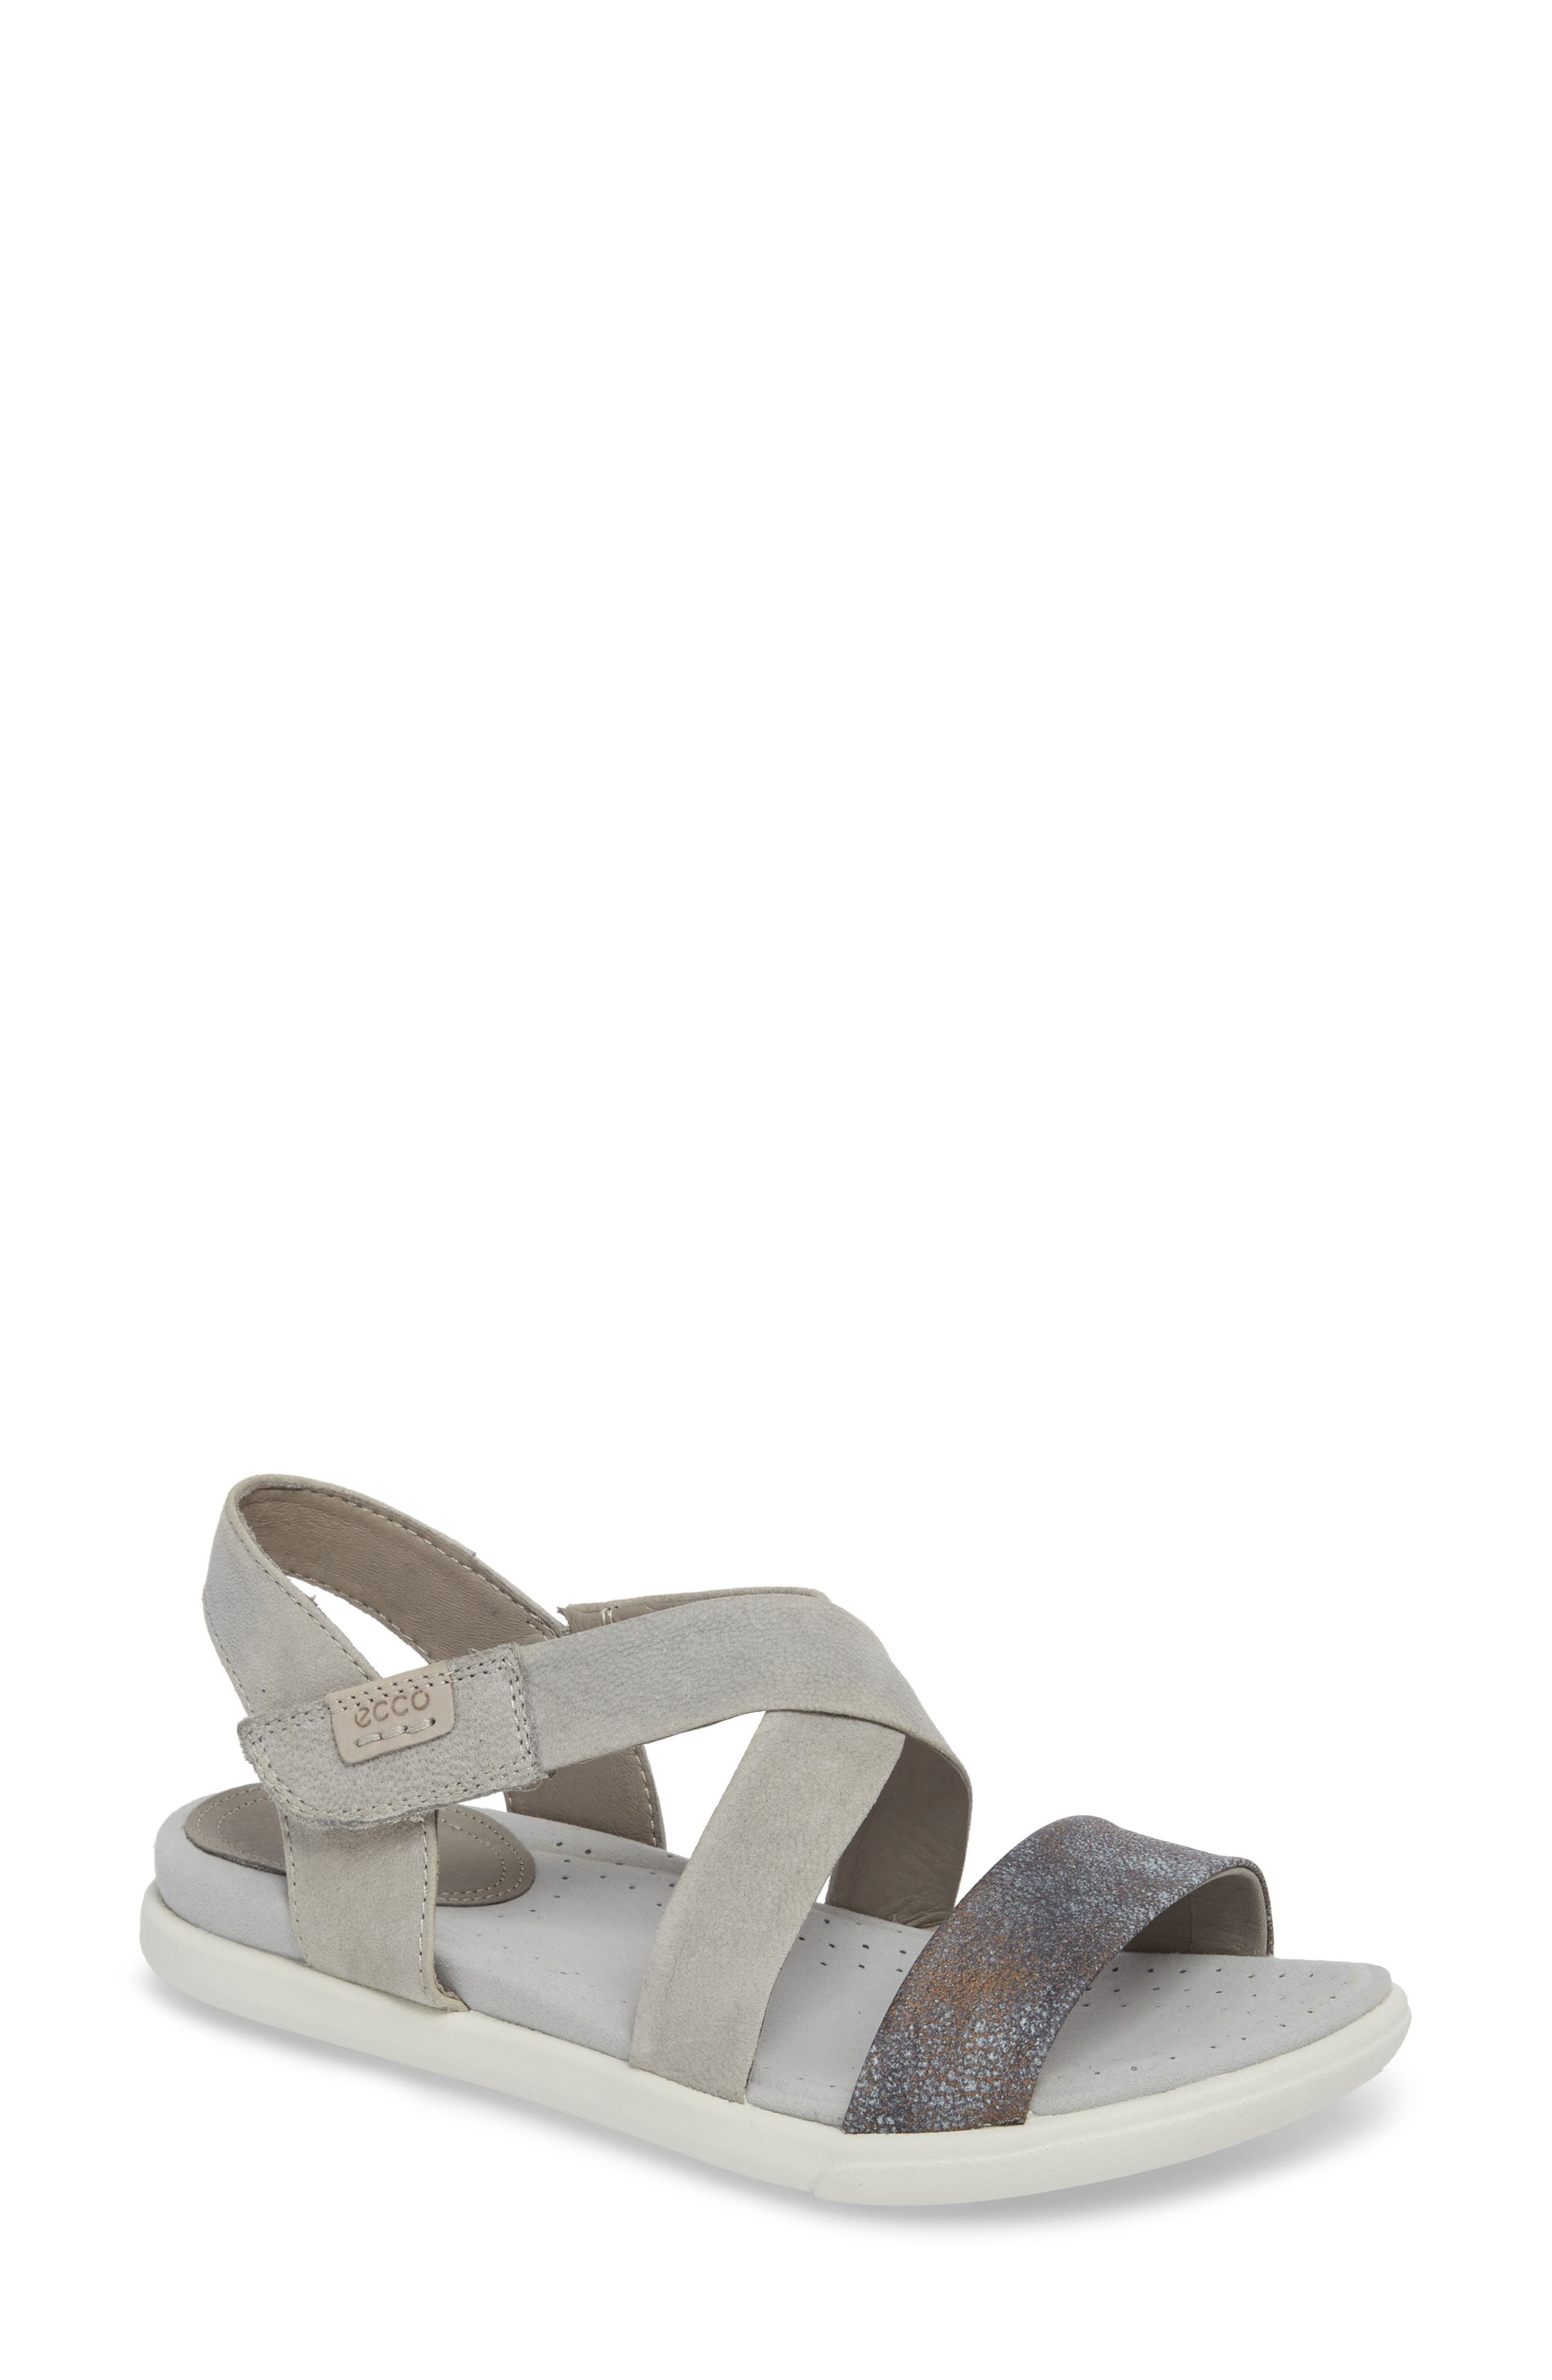 Damara Cross-Strap Sandal,                             Main thumbnail 2, color,